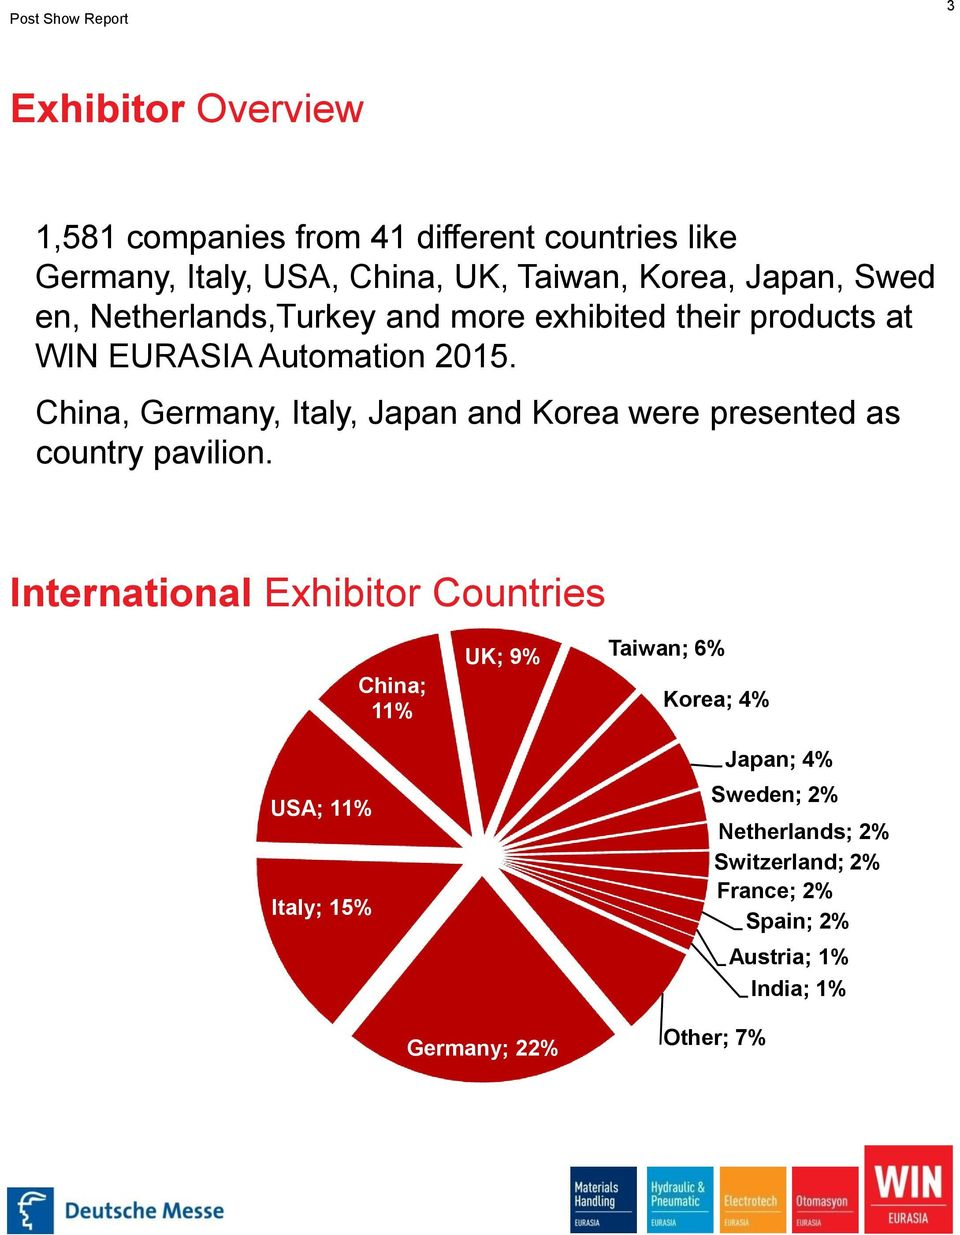 China, Germany, Italy, Japan and Korea were presented as country pavilion.